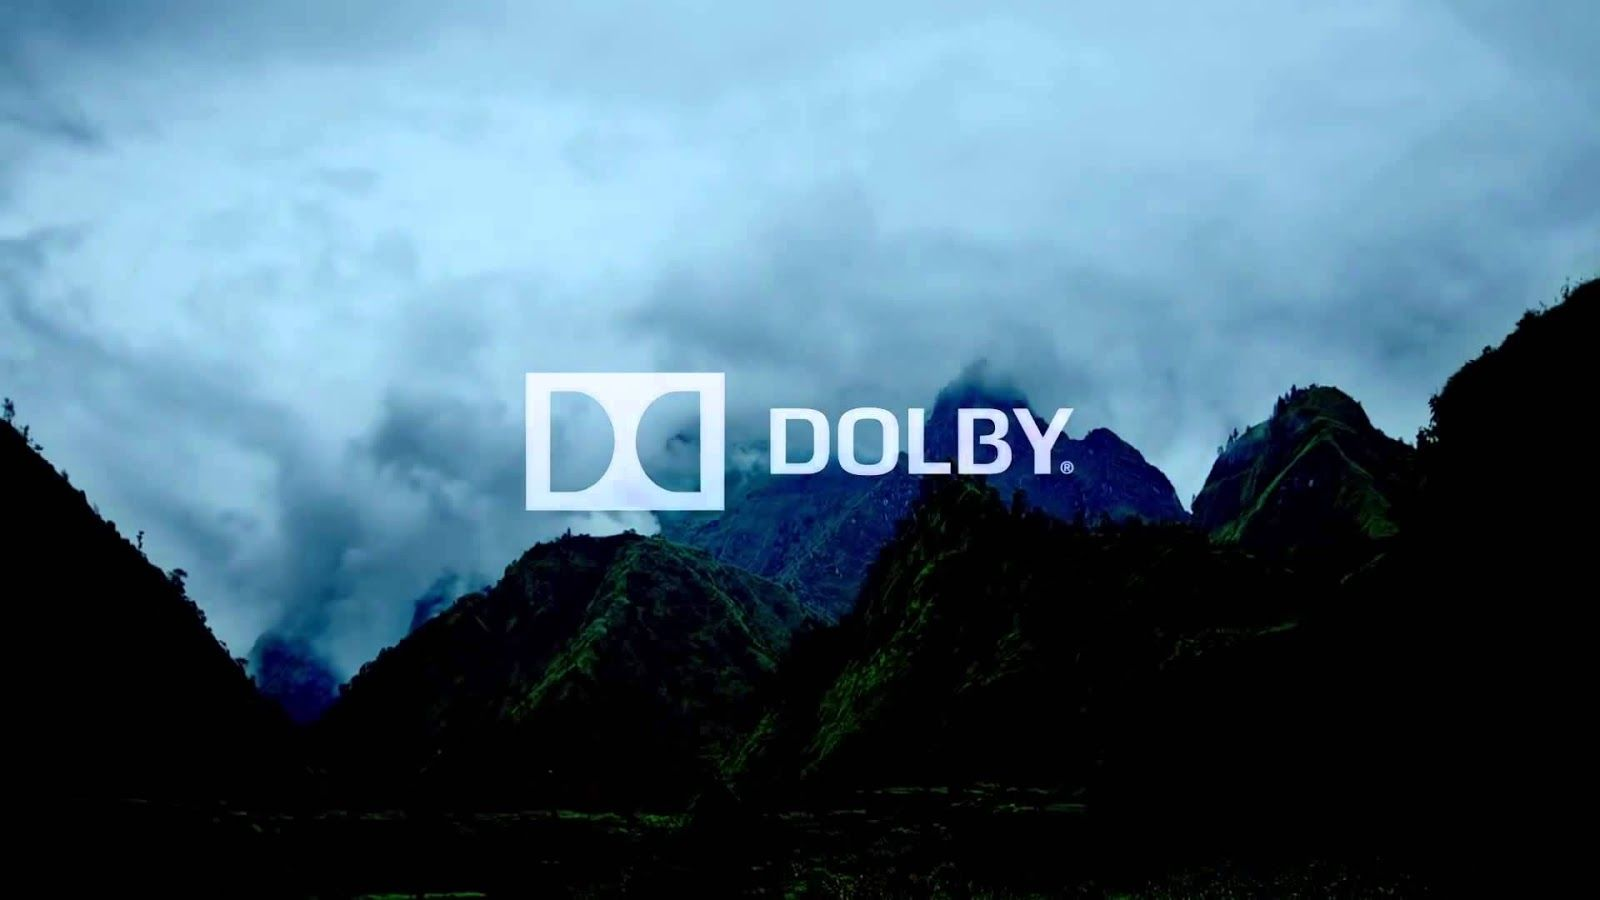 1600x900 How To Install Dolby Digital Audio On Windows 10,8.1,8,7 on any ...